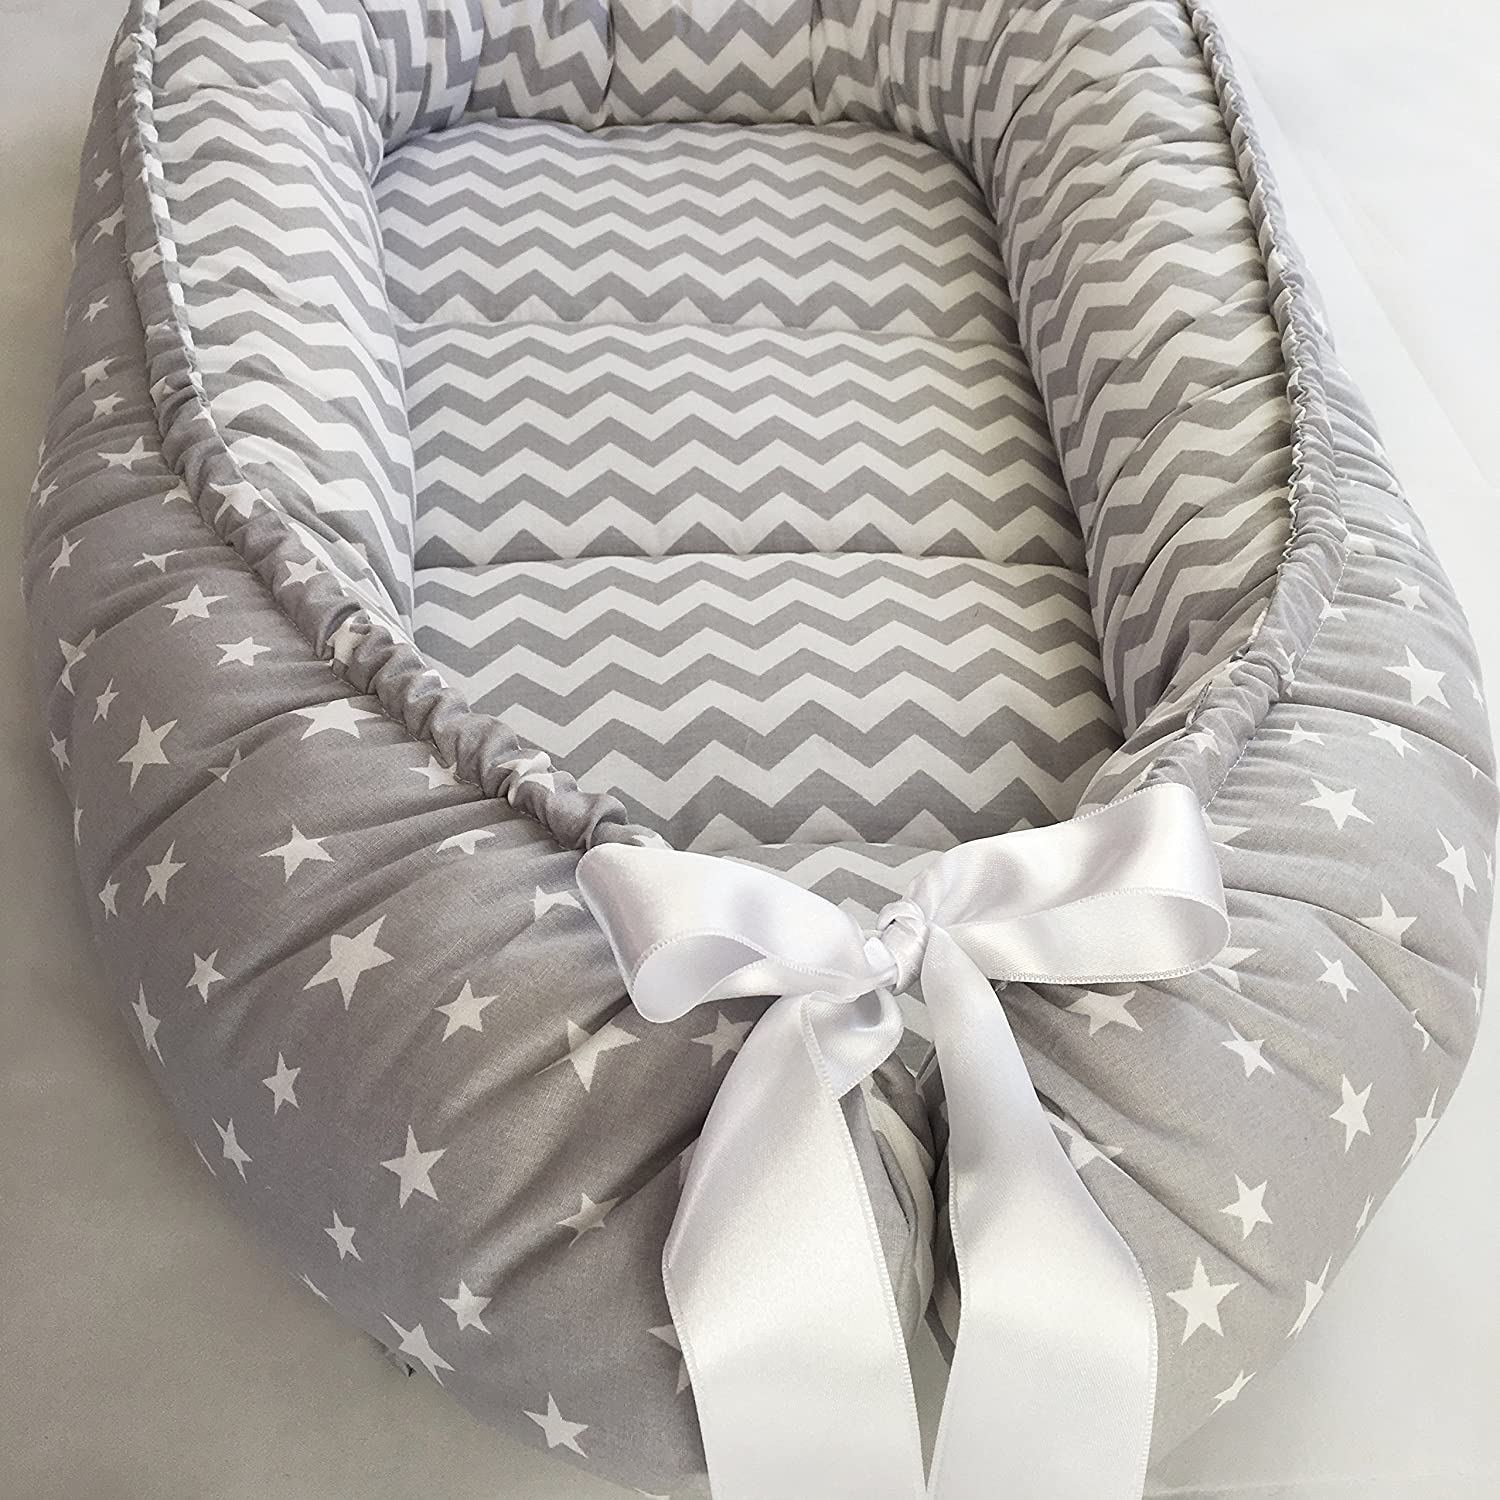 Baby Nest Bed, Gray Babynest, Organic Cotton, Baby Boy, Baby Girl, Newborn Travel Bed, Baby Snuggle Nest Bed, Double-Sided Baby Lounger BabyNestBed